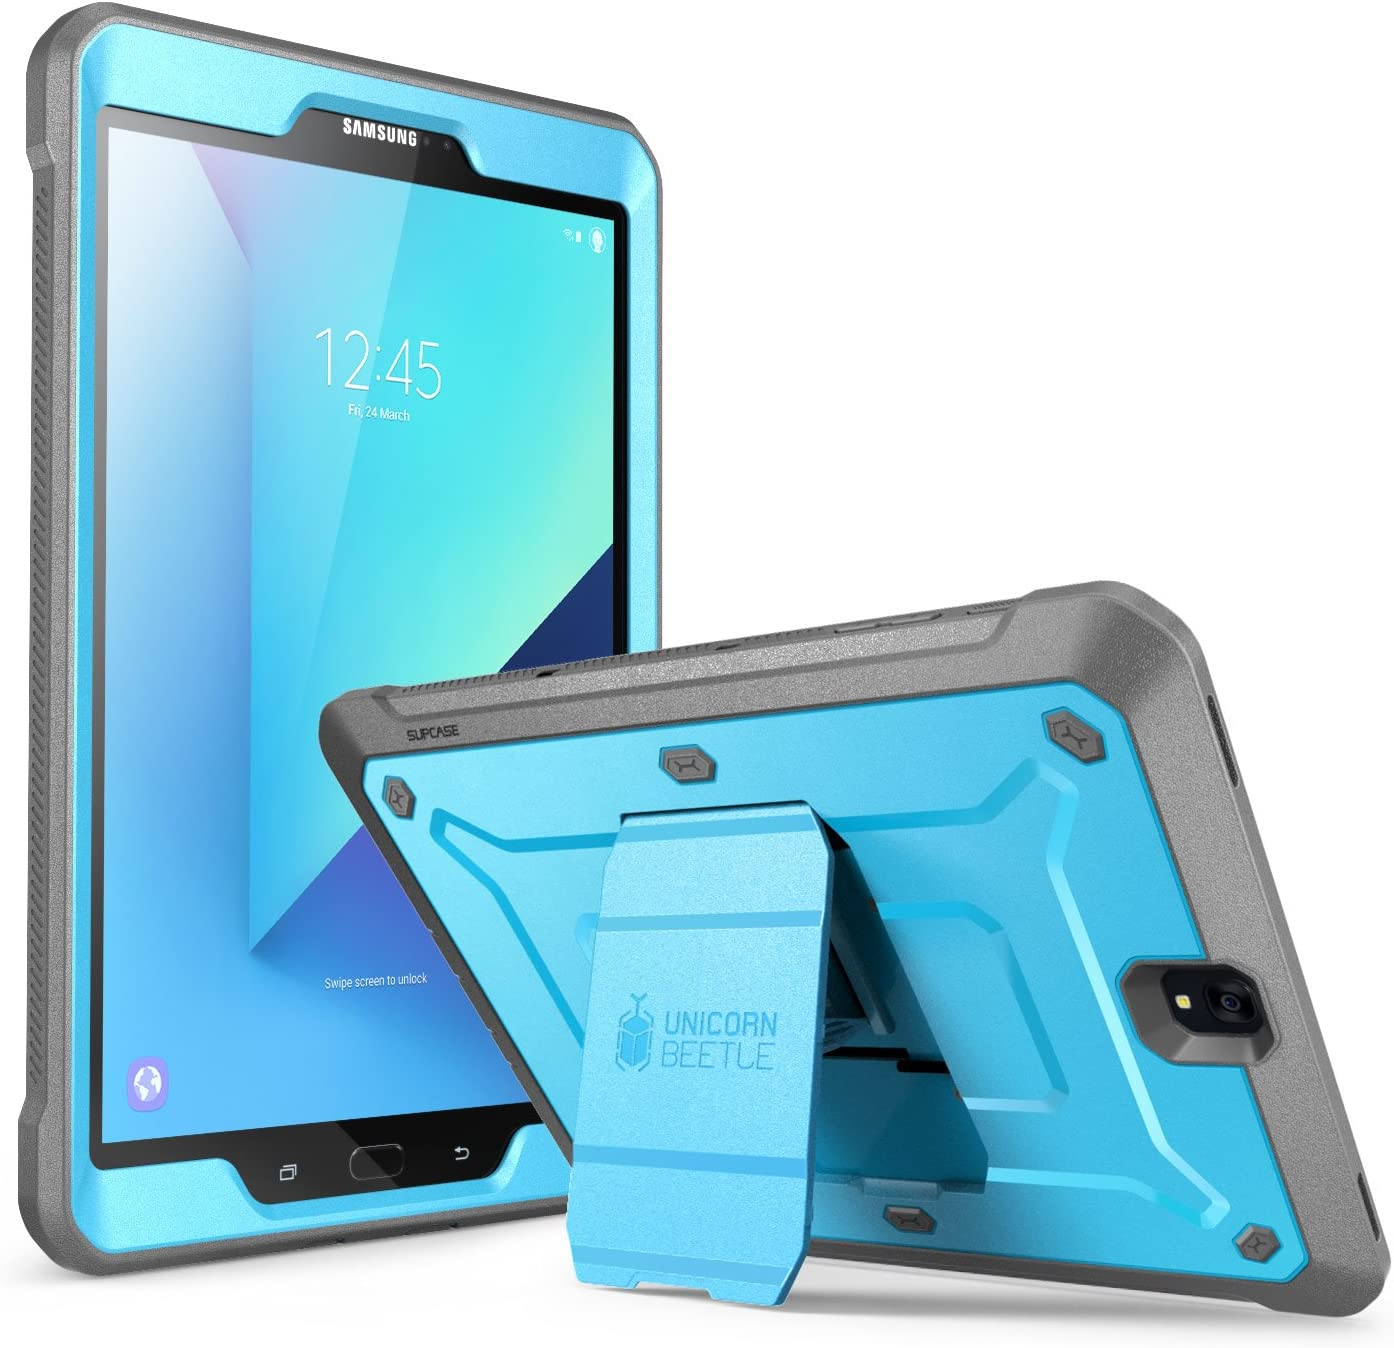 Amazon Com Supcase Galaxy Tab S3 9 7 Case Unicorn Beetle Pro Series Full Body Rugged With Built In Screen Protector Blue Black Sup Galaxy Tabs3 9 7 Ubpro Blue Black Computers Accessories